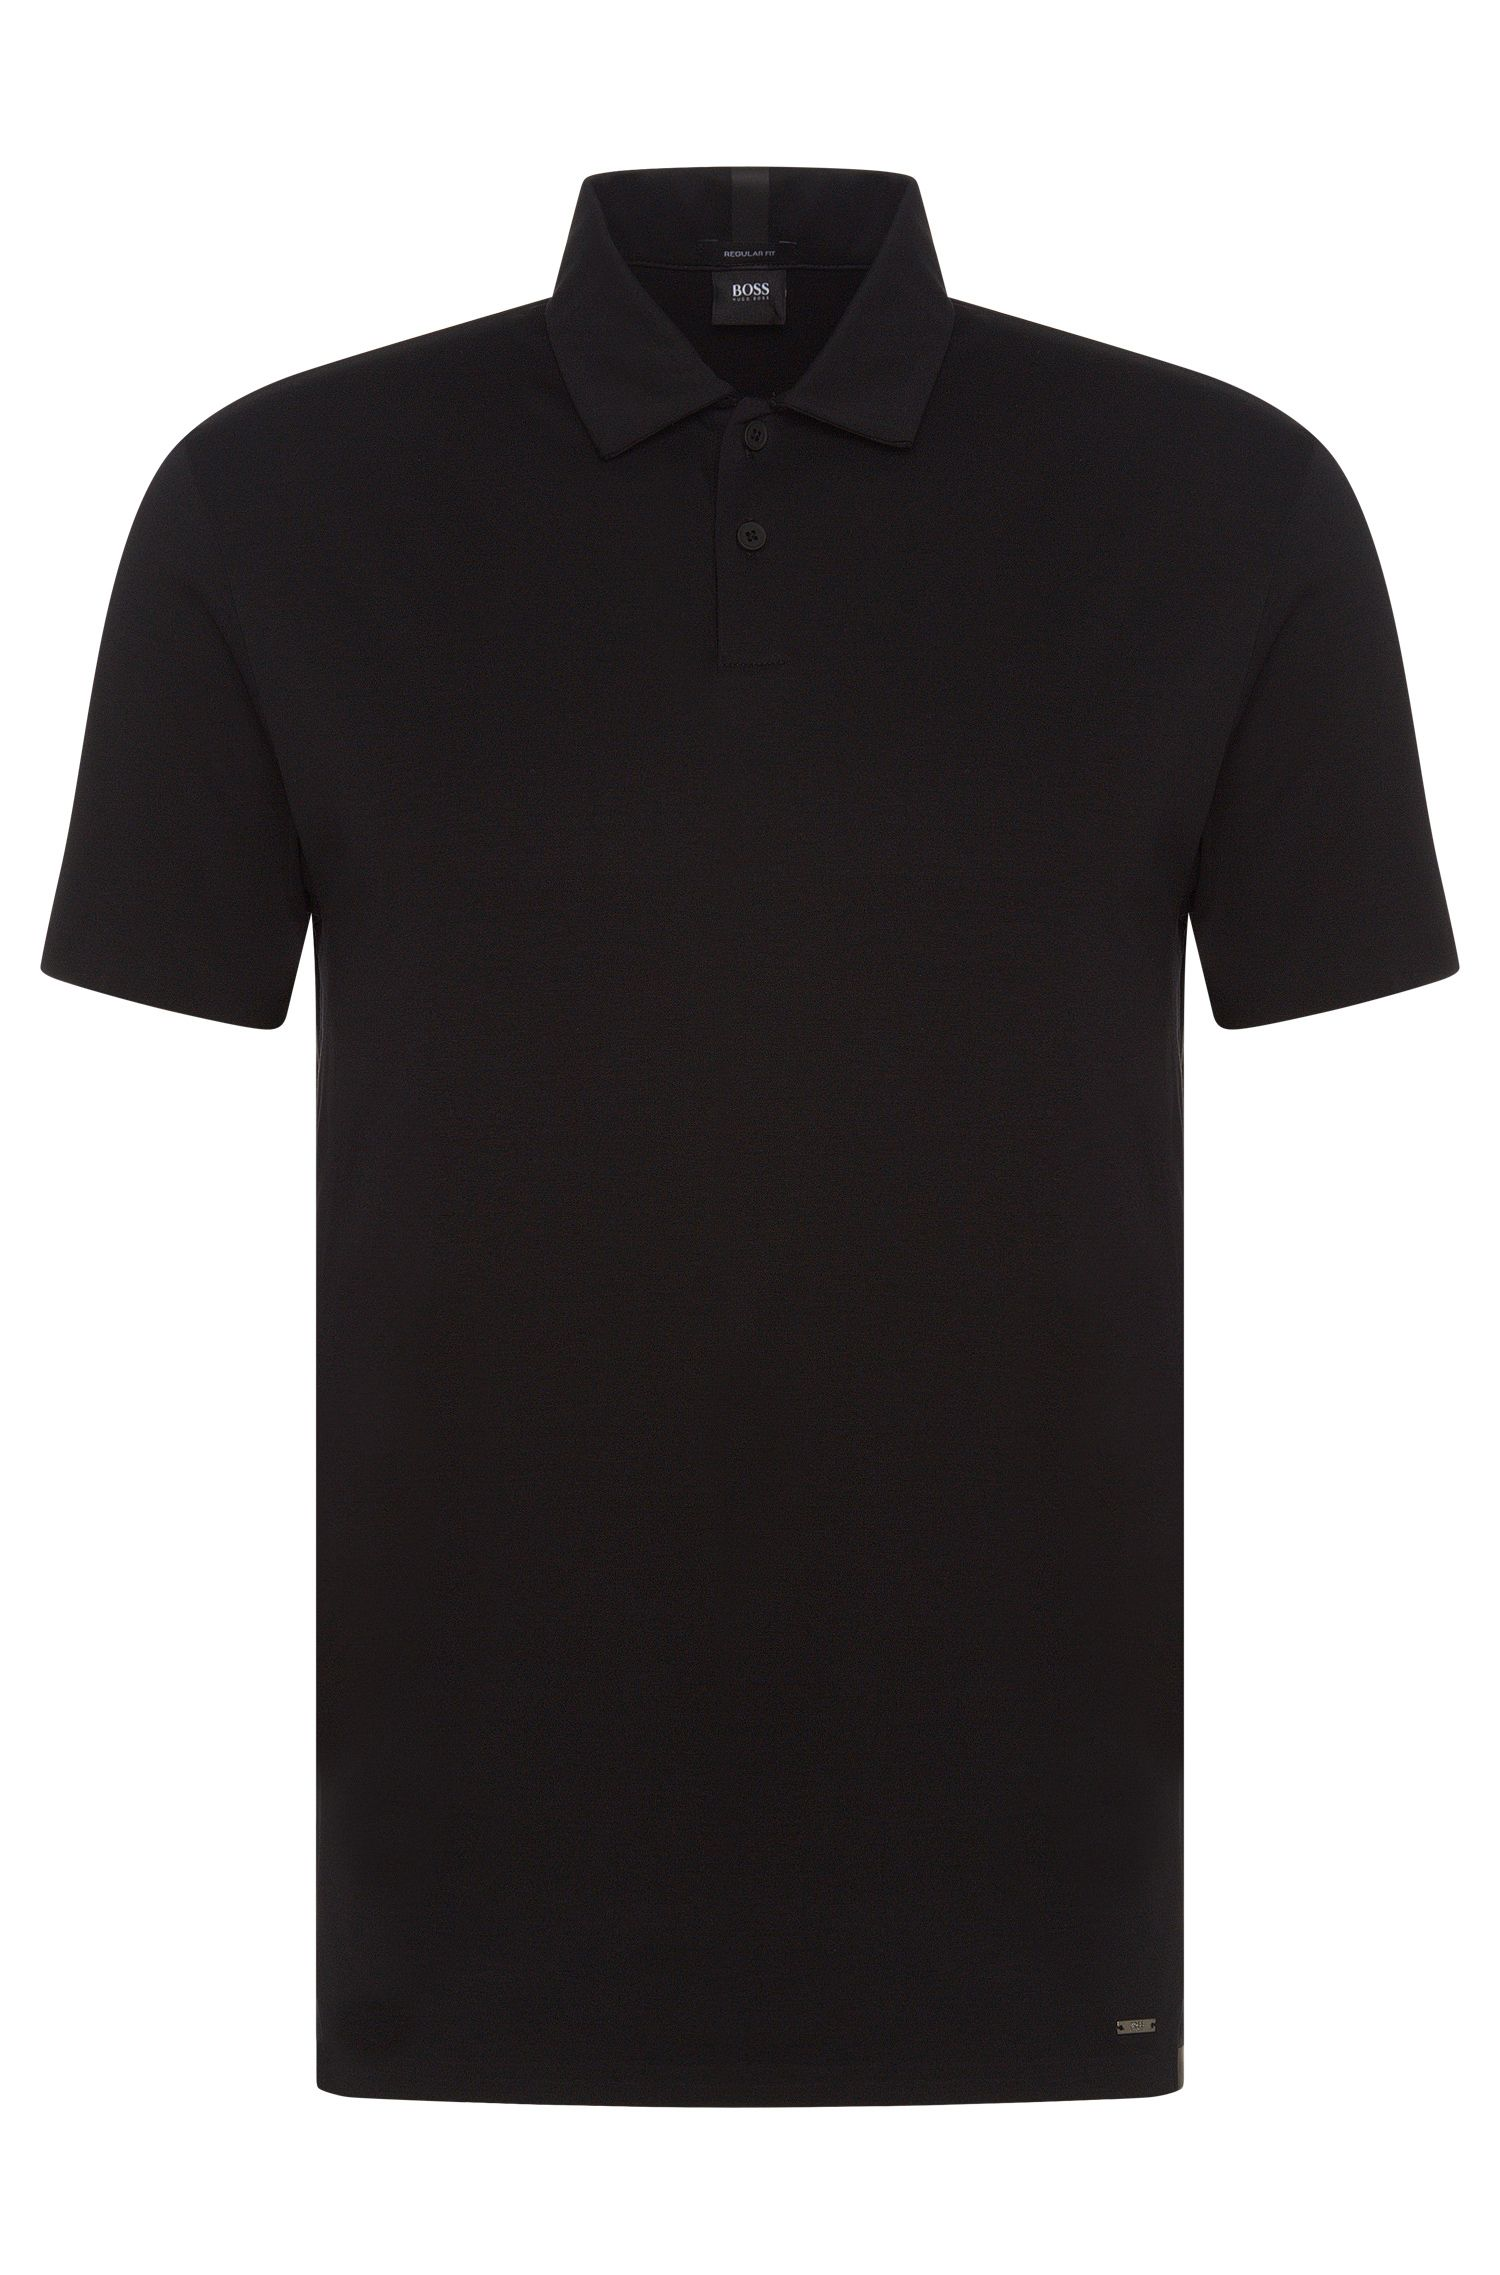 Regular-Fit Travel Line Poloshirt aus Baumwolle: 'Press 19'